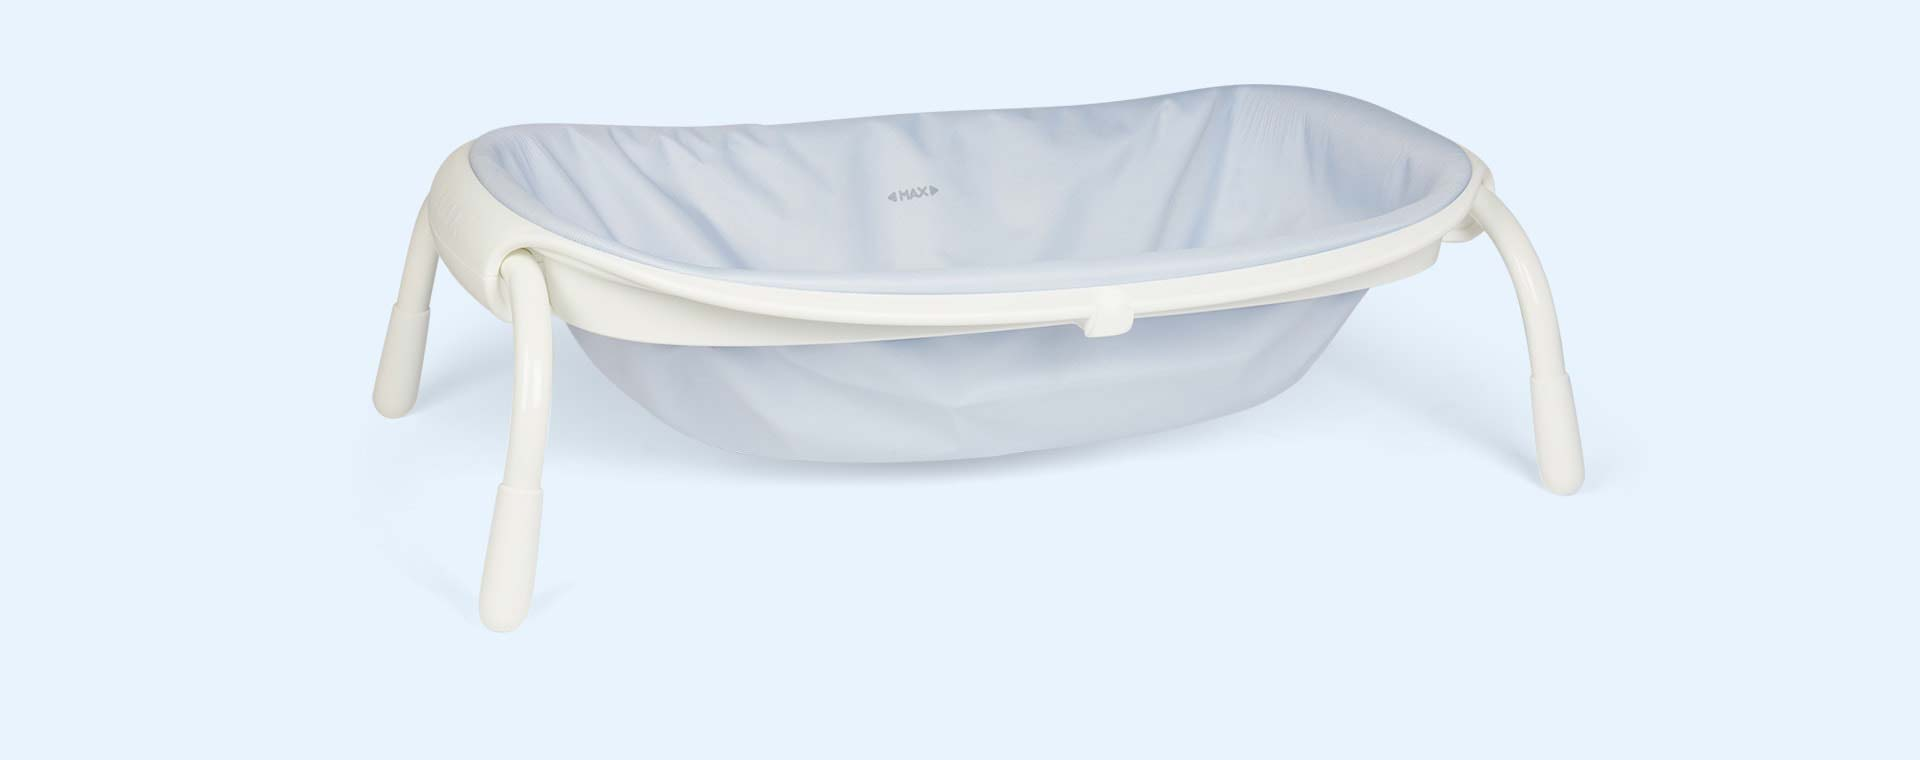 Blue Beaba Compact Foldable Bath